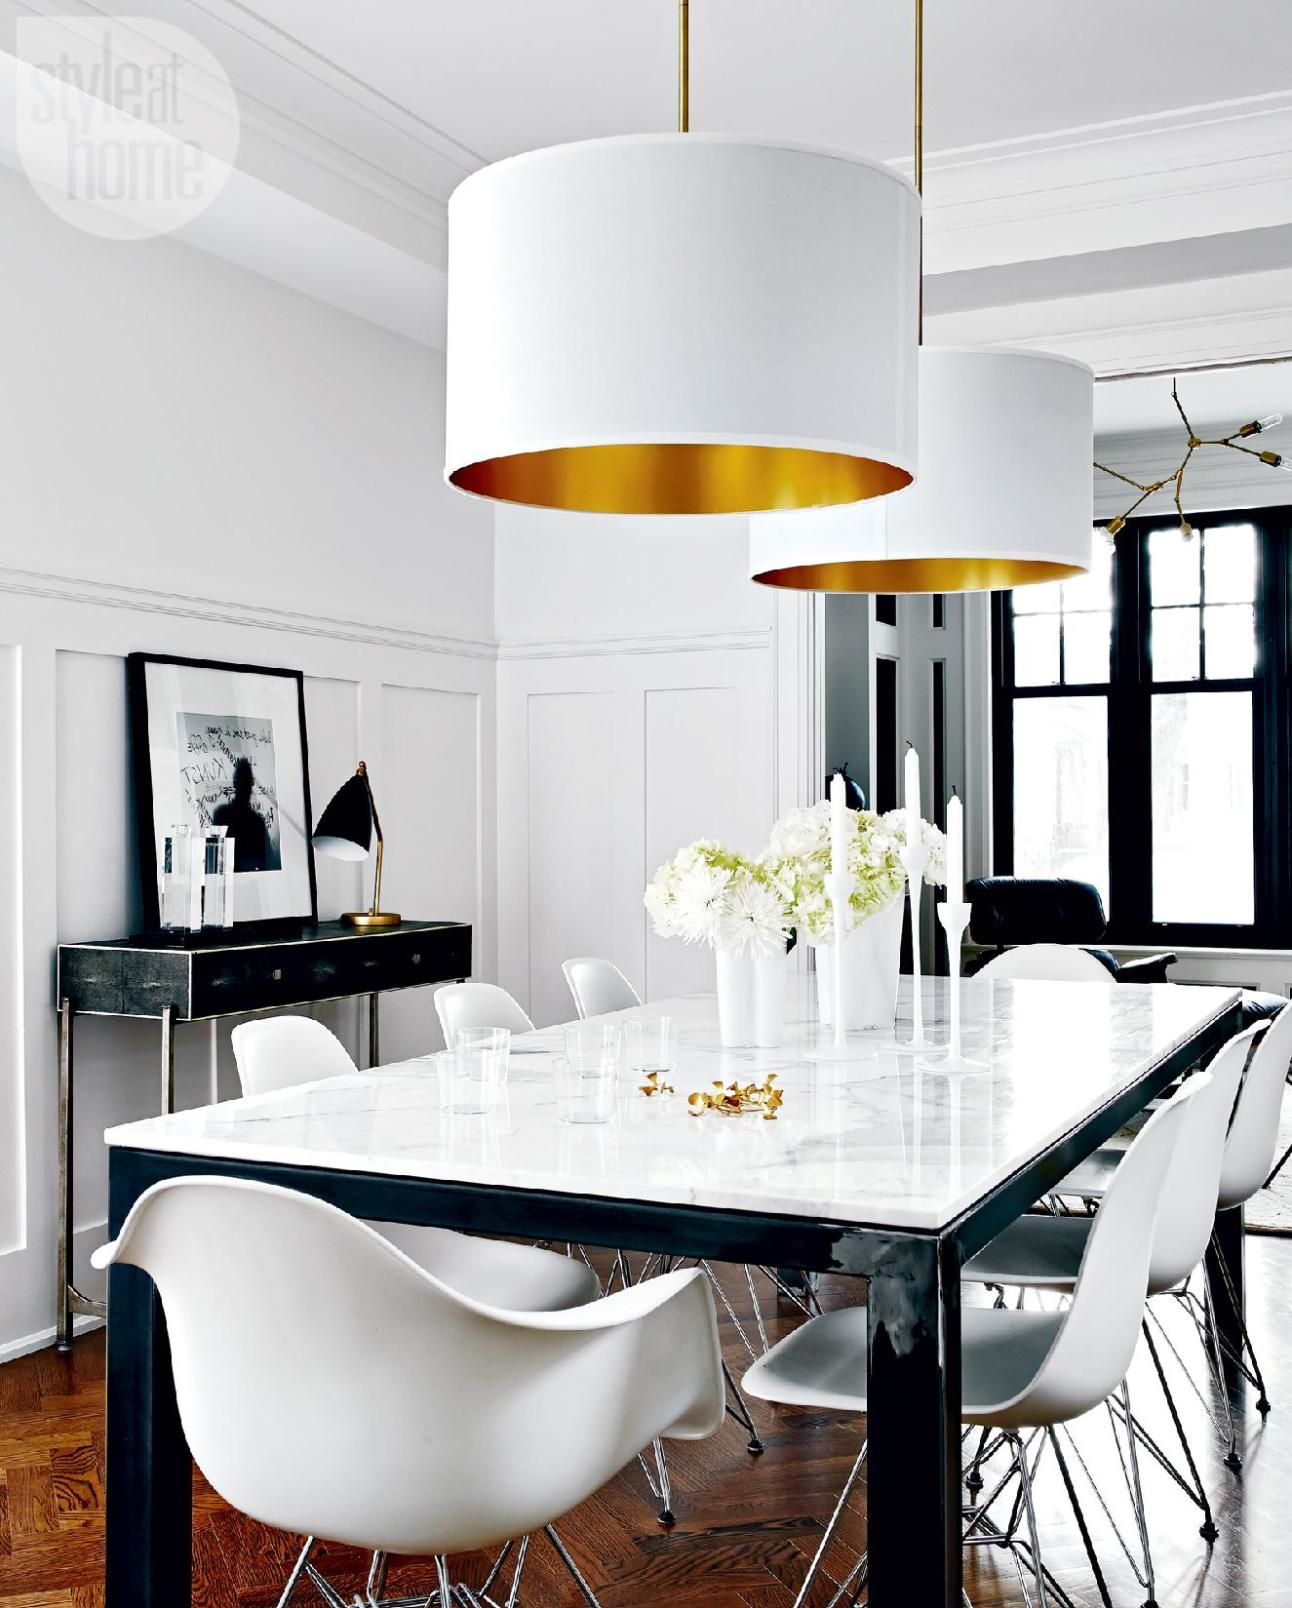 Herringbone Floors Are Juxtaposed With A Clean Lined Marble And Clear Lacquered